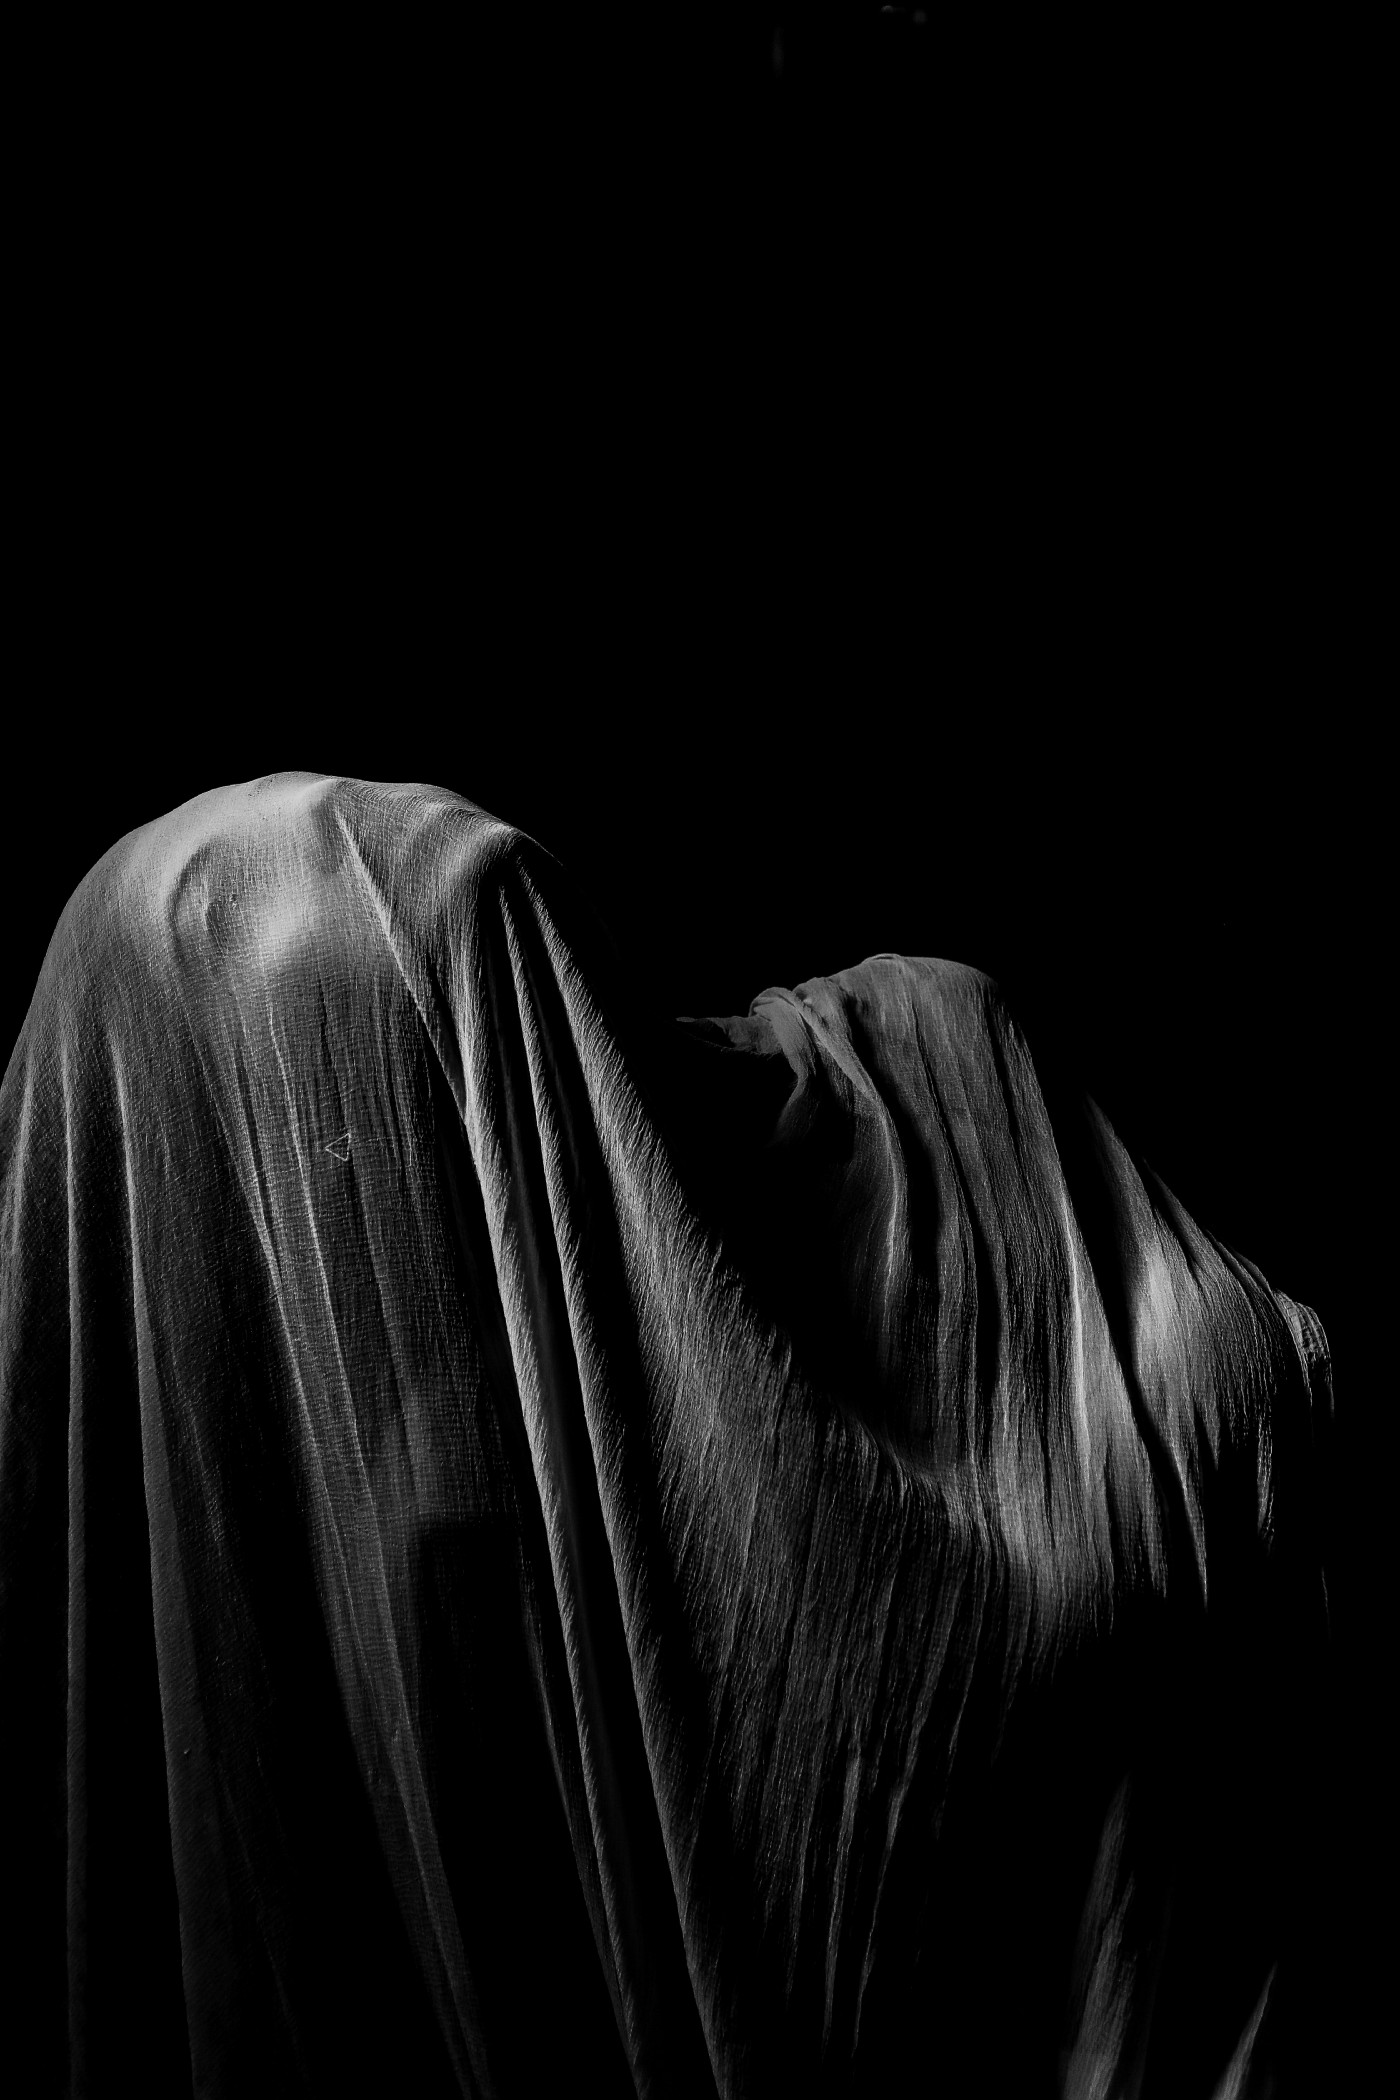 A woman covered in a cloth hiding her personality